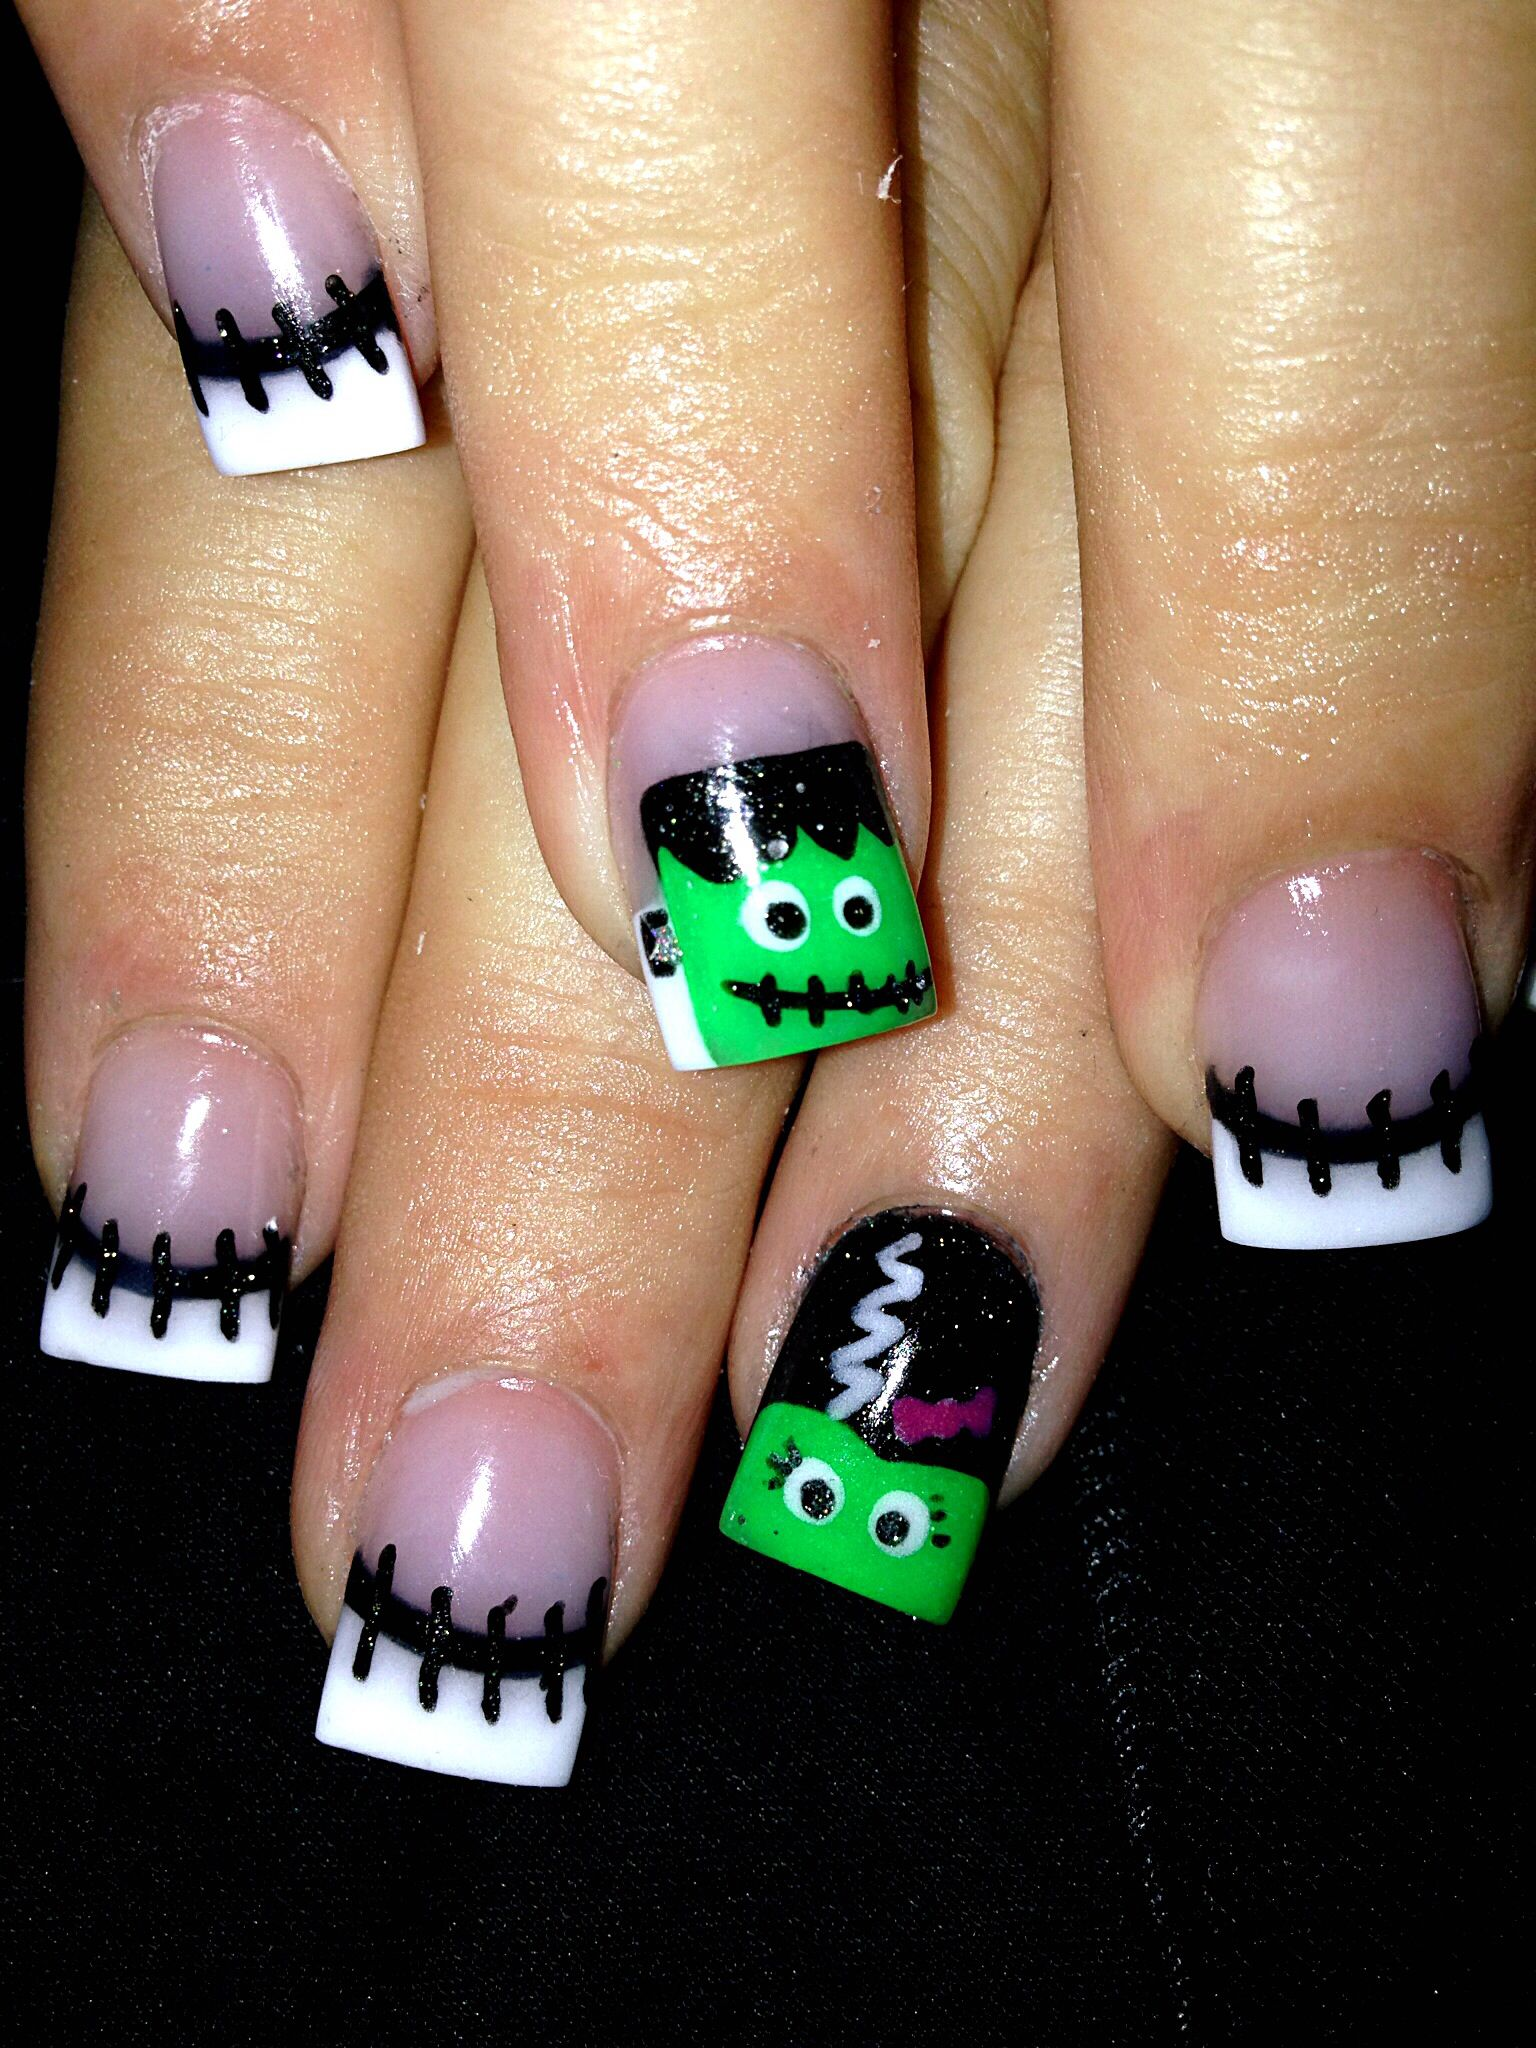 With out the Frankenstein I think these would be cute for Halloween! - With Out The Frankenstein I Think These Would Be Cute For